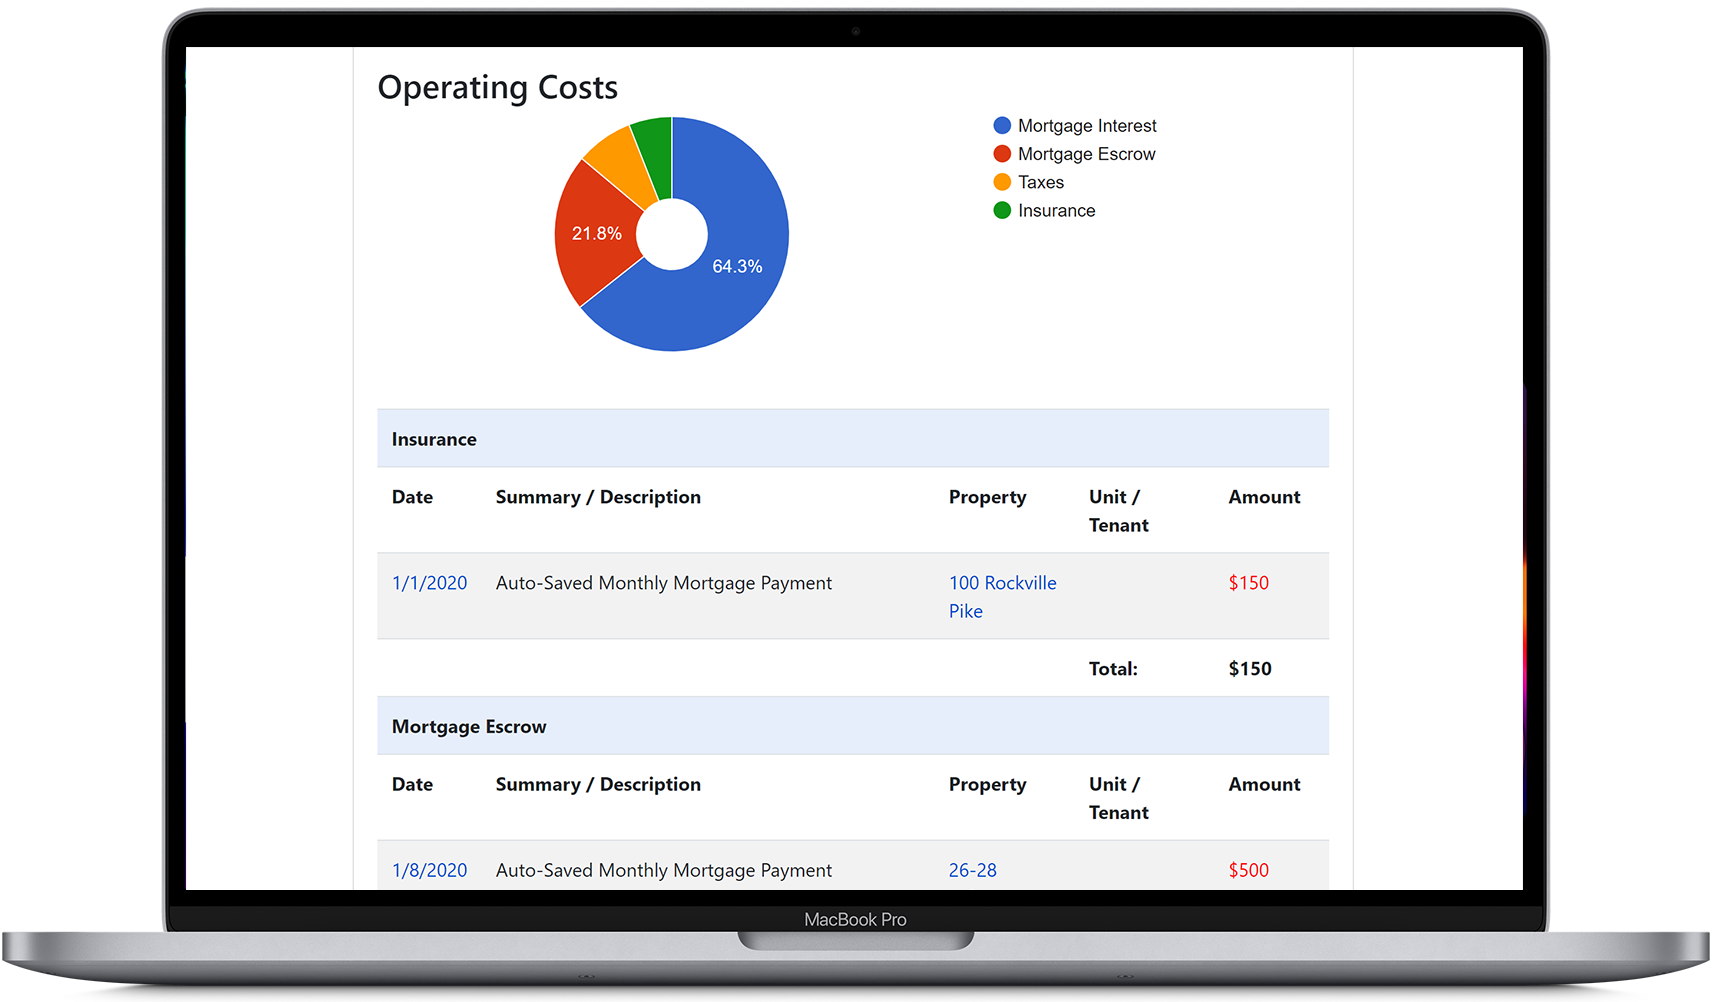 View the operating costs report in our landlord software, showing rental expenses